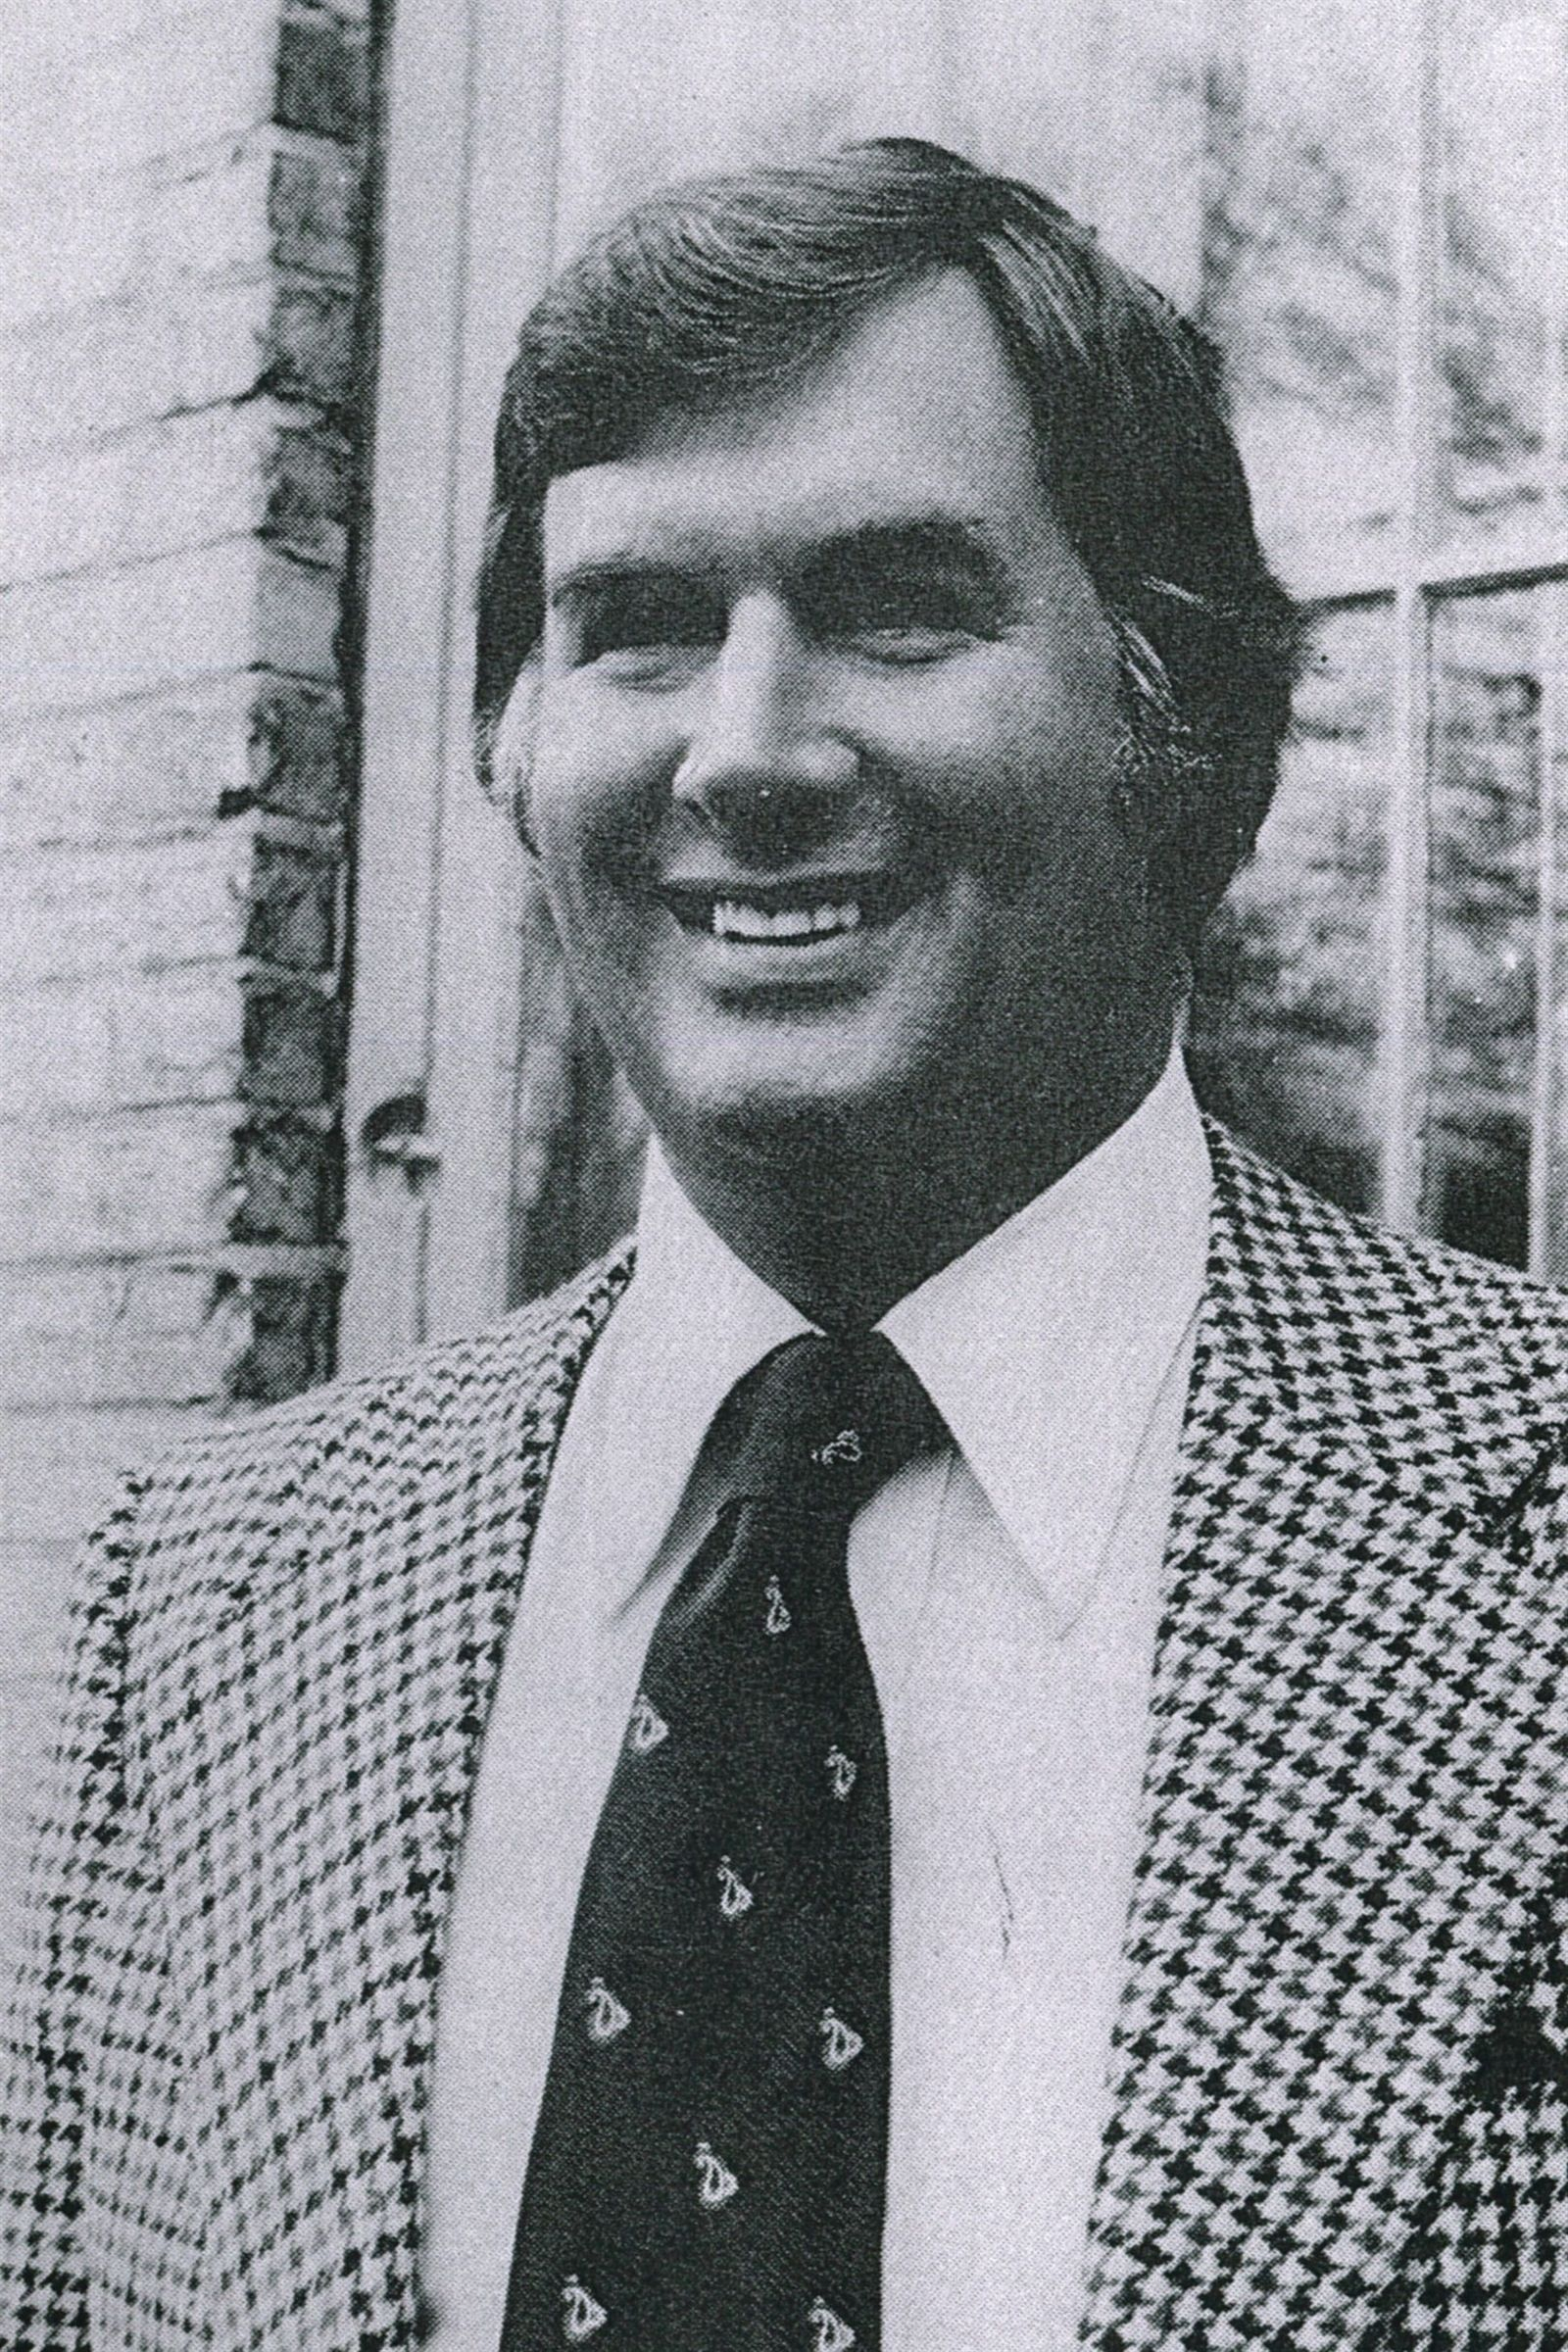 John Pratt, Headmaster from 1972-1976